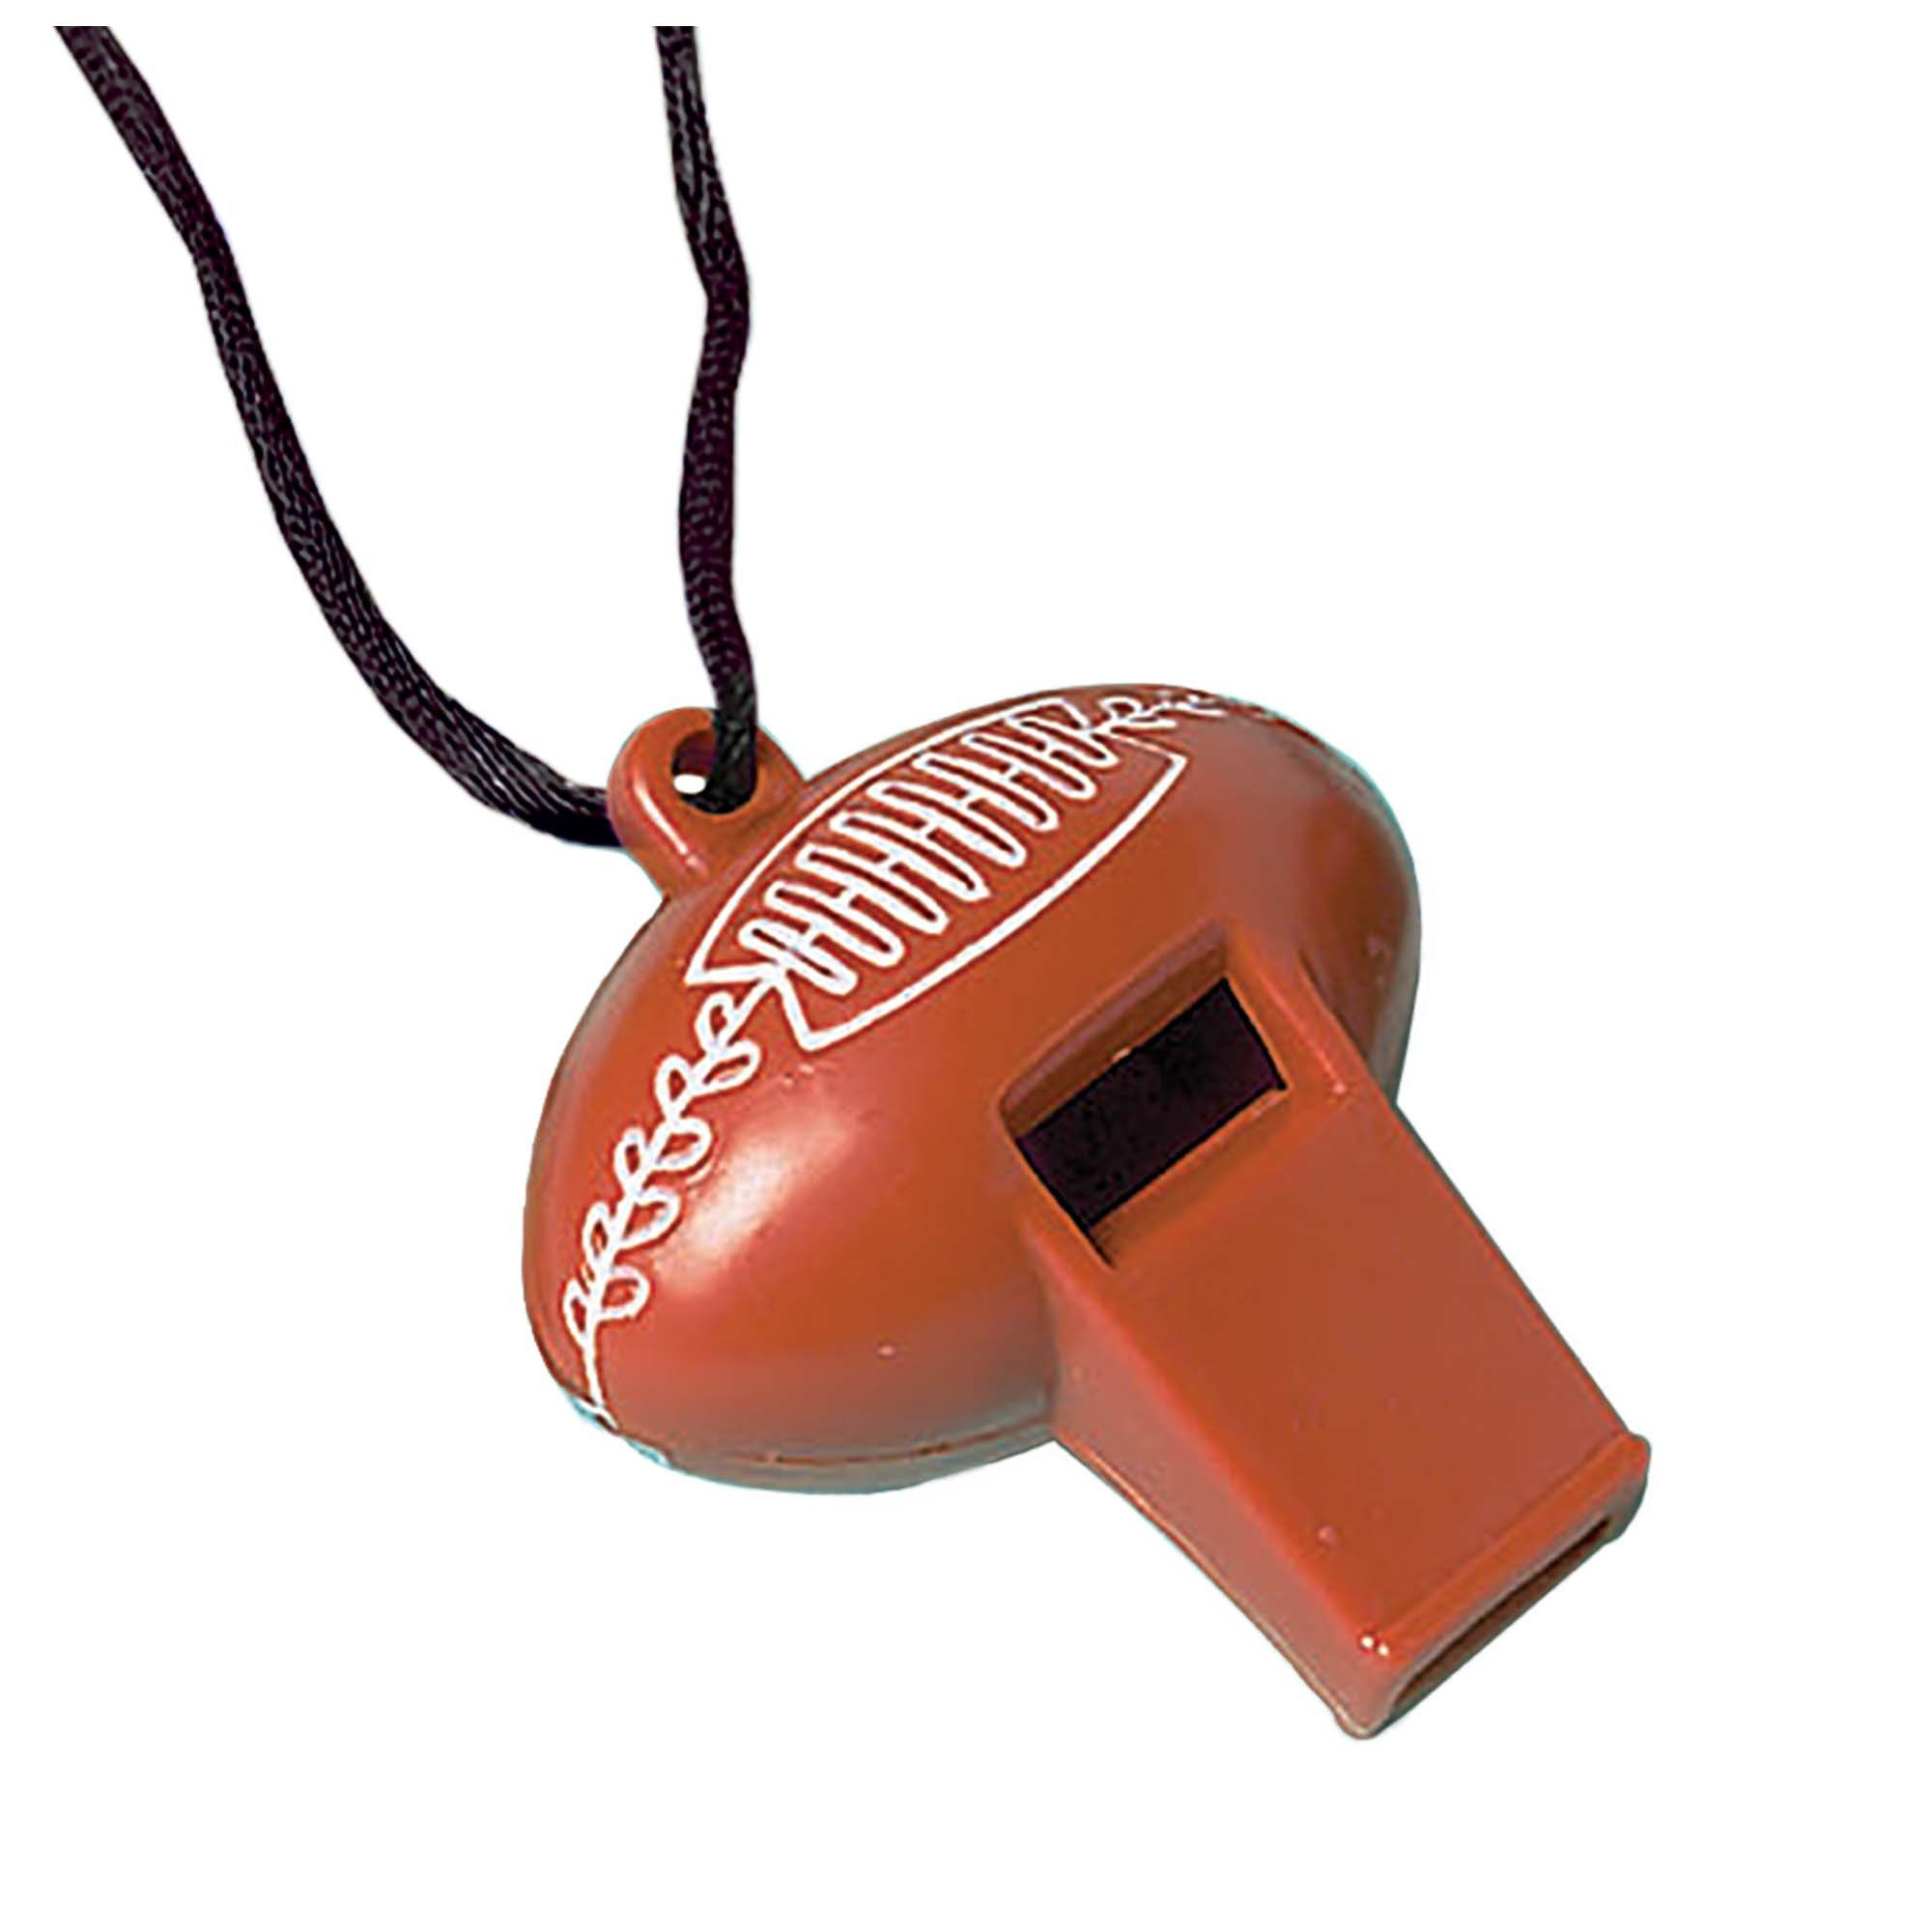 GO Fight Win Football Whistle Favors